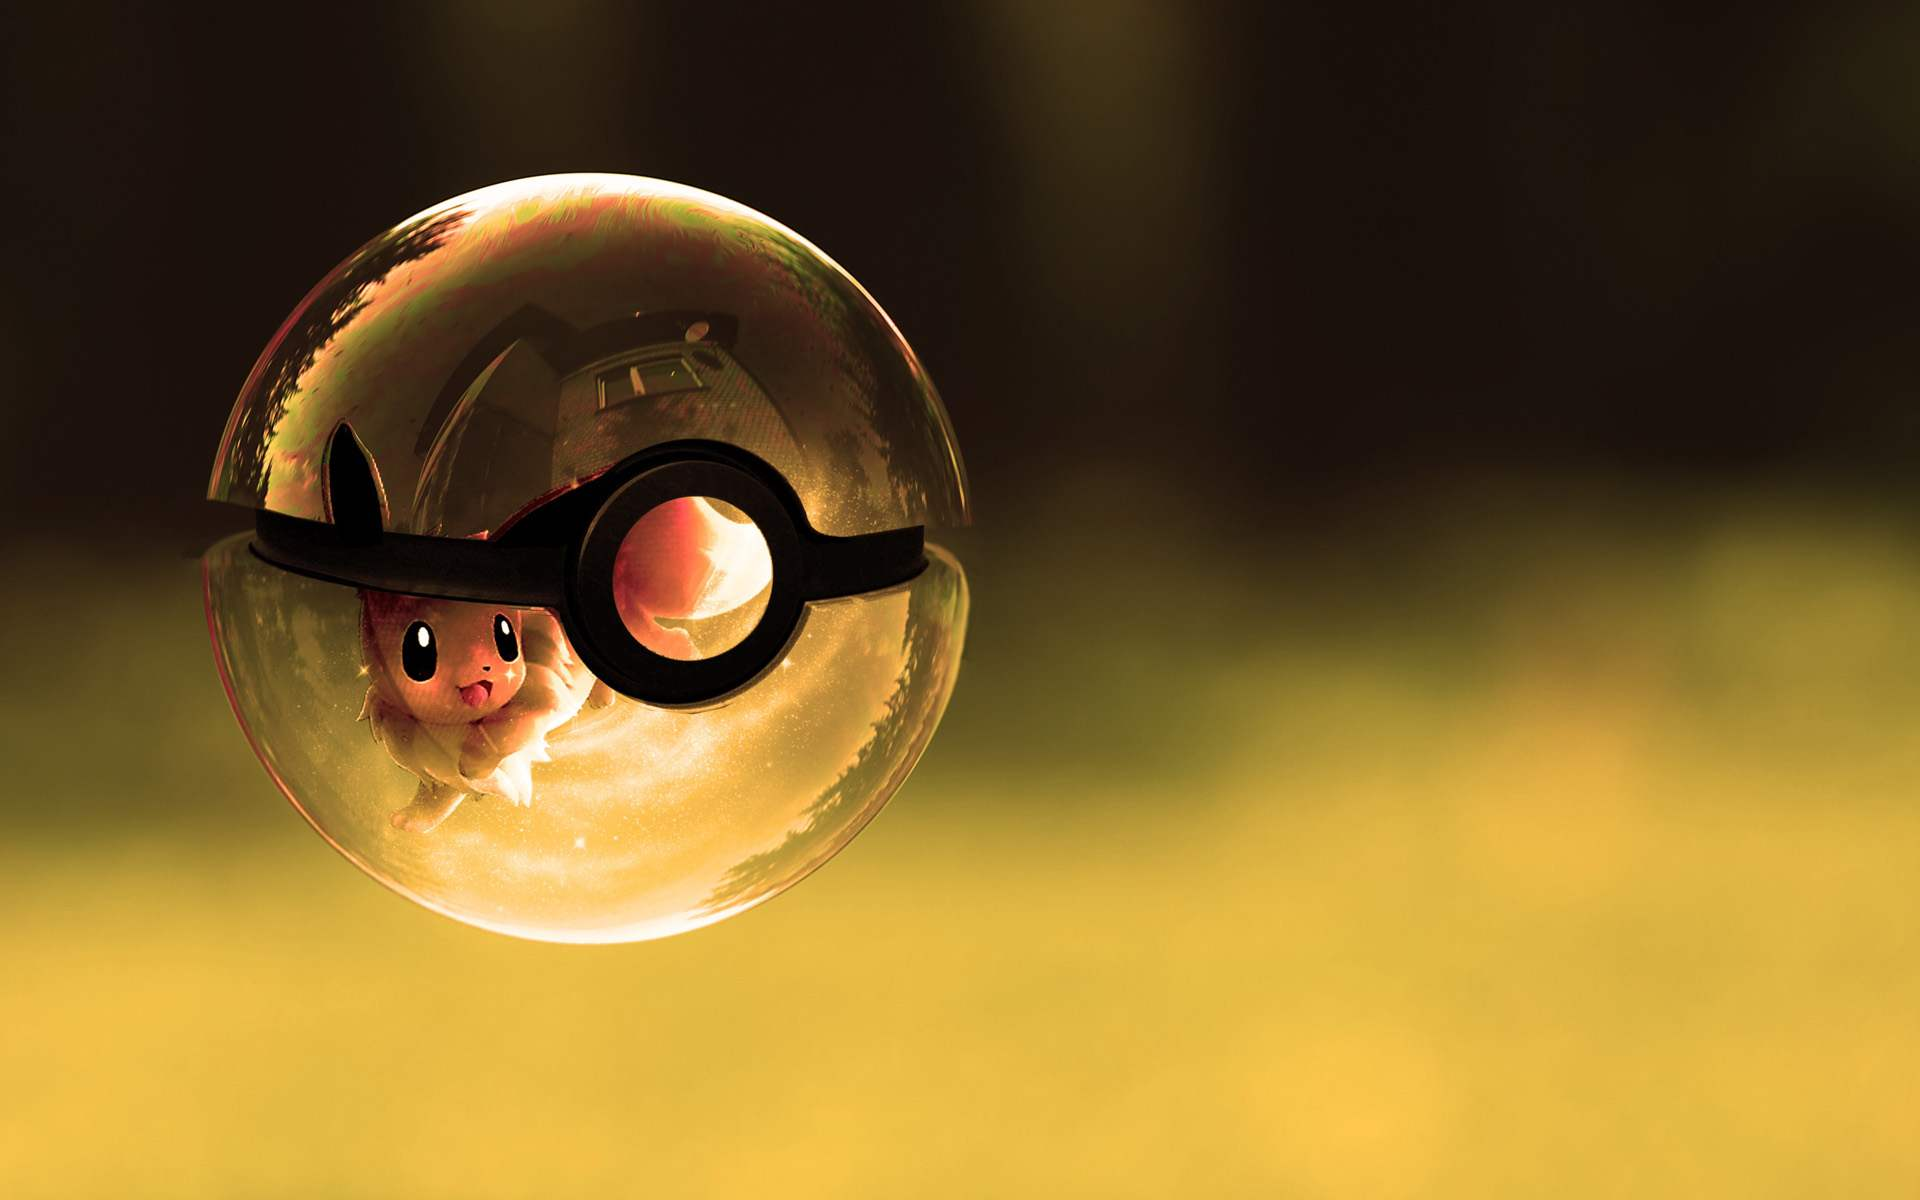 Eevee Poke Ball Pokemon Wallpaper 1920x1200